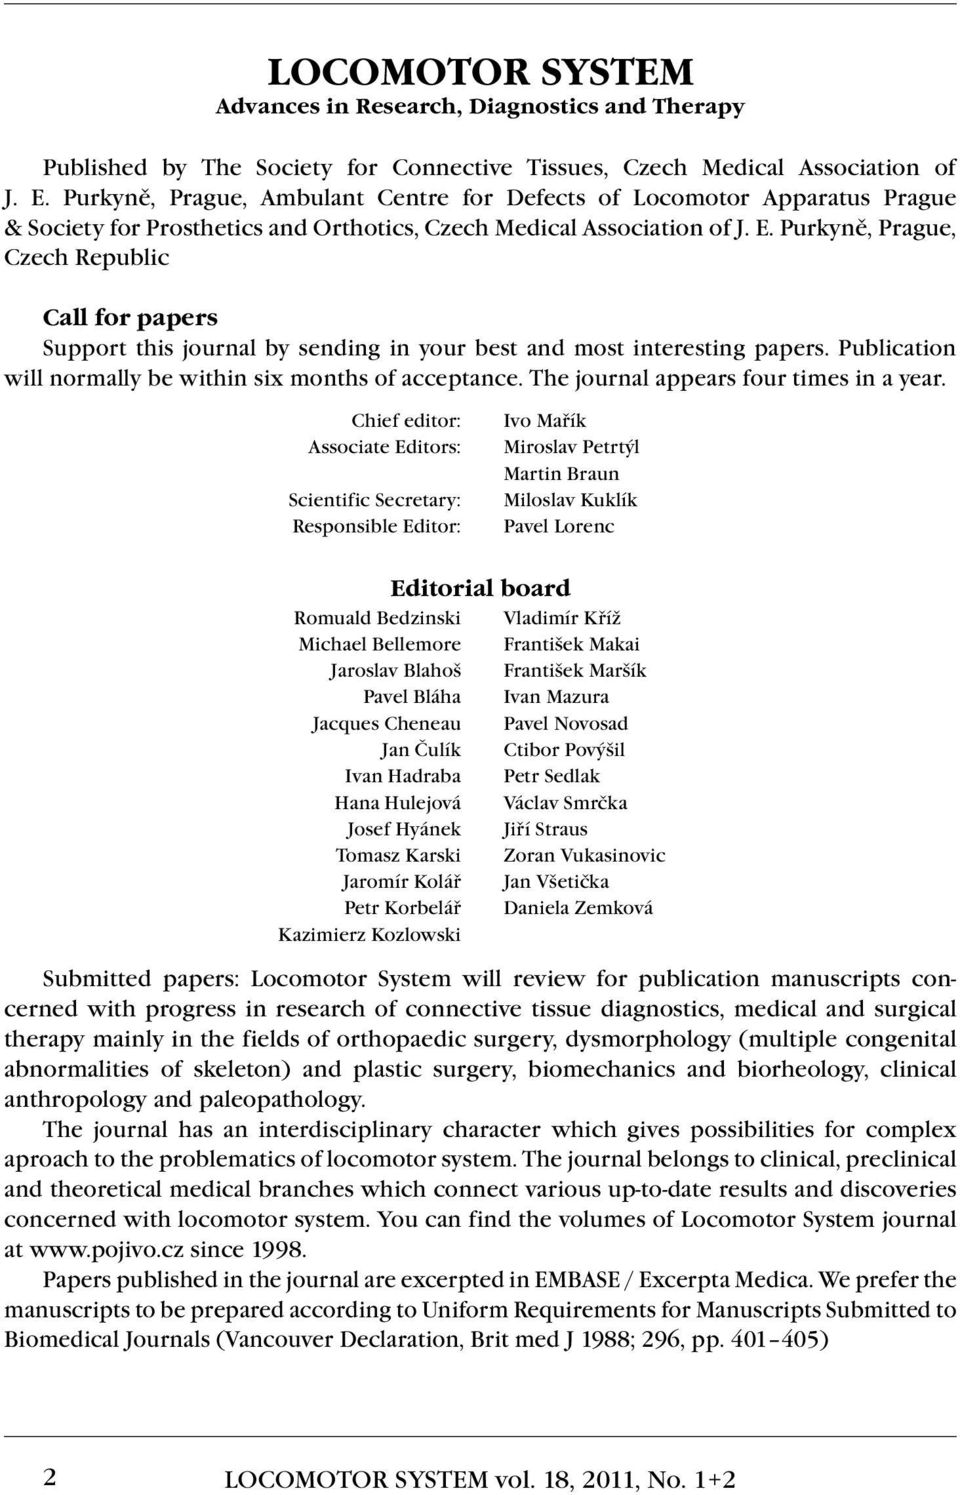 Purkyně, Prague, Czech Republic Call for papers Support this journal by sending in your best and most interesting papers. Publication will normally be within six months of acceptance.